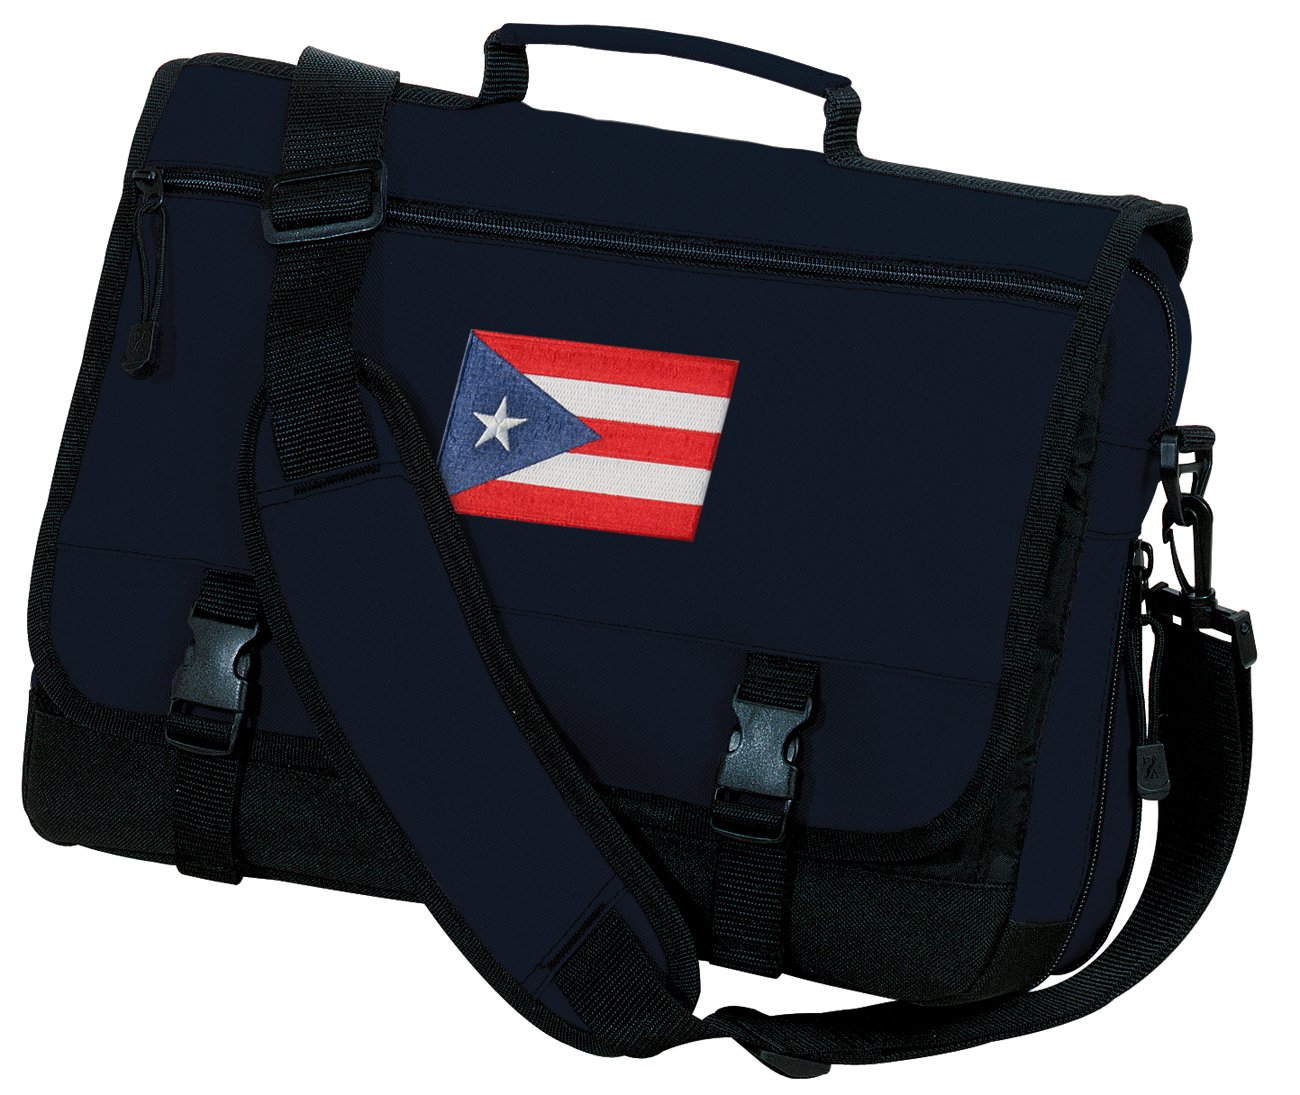 Puerto Rico Laptop Bag Puerto Rico Flag Computer Bag Messenger Bag